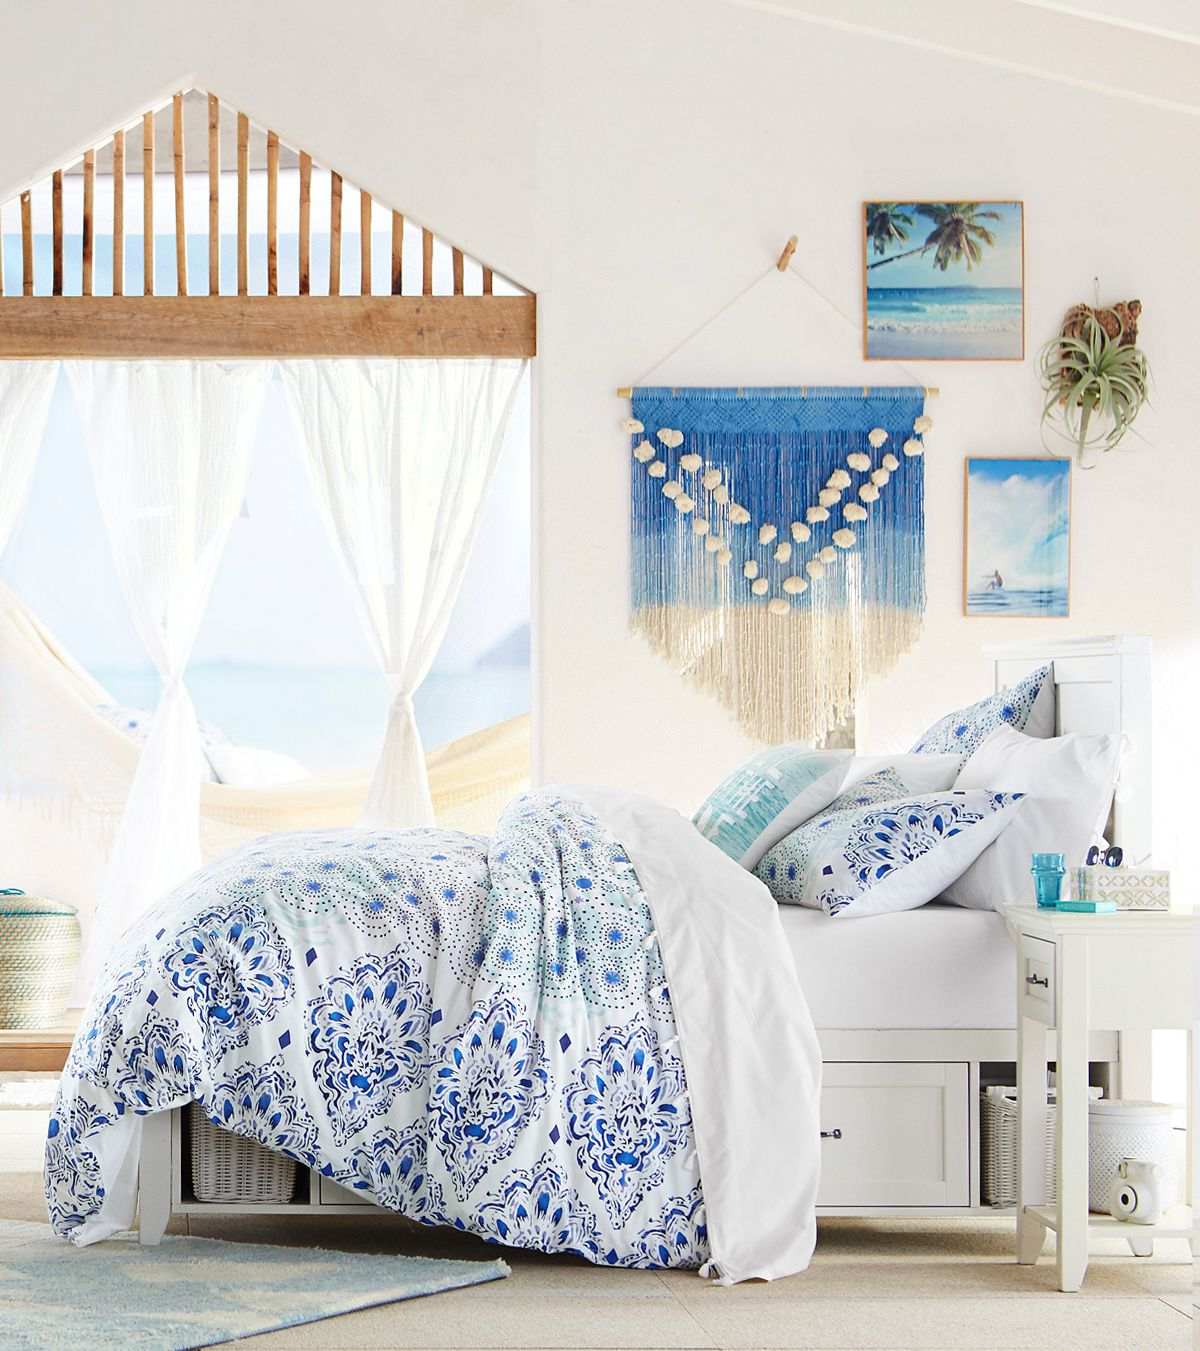 3 Easy Ways To Get The Surfer Look In Your Room: 1. Pick A